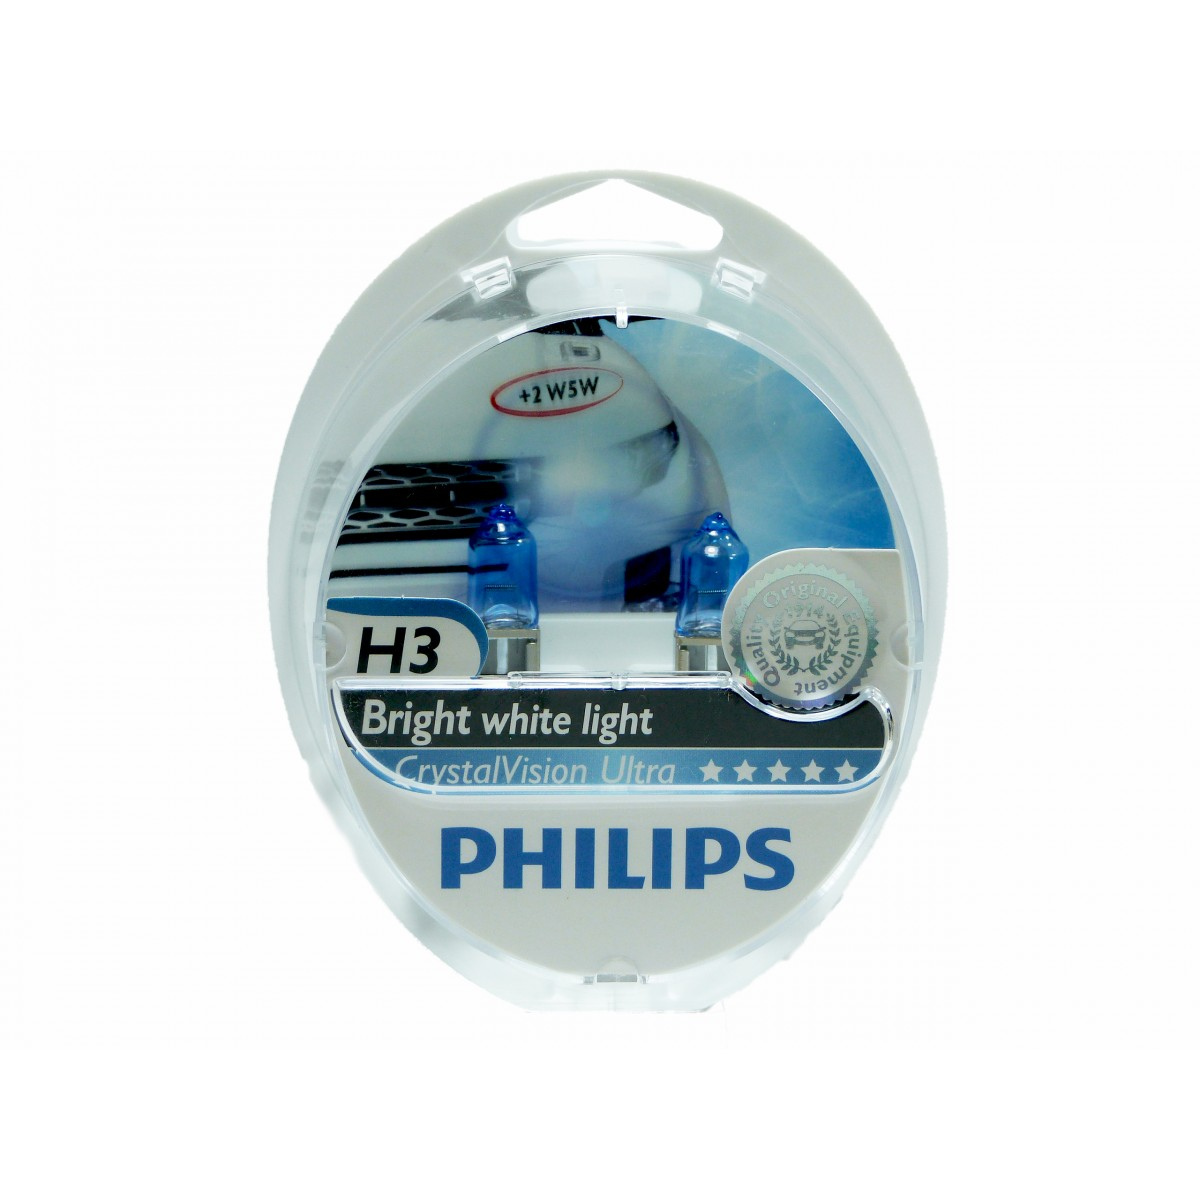 Kit Lampadas Philips Crystal Vision H3 Super Branca